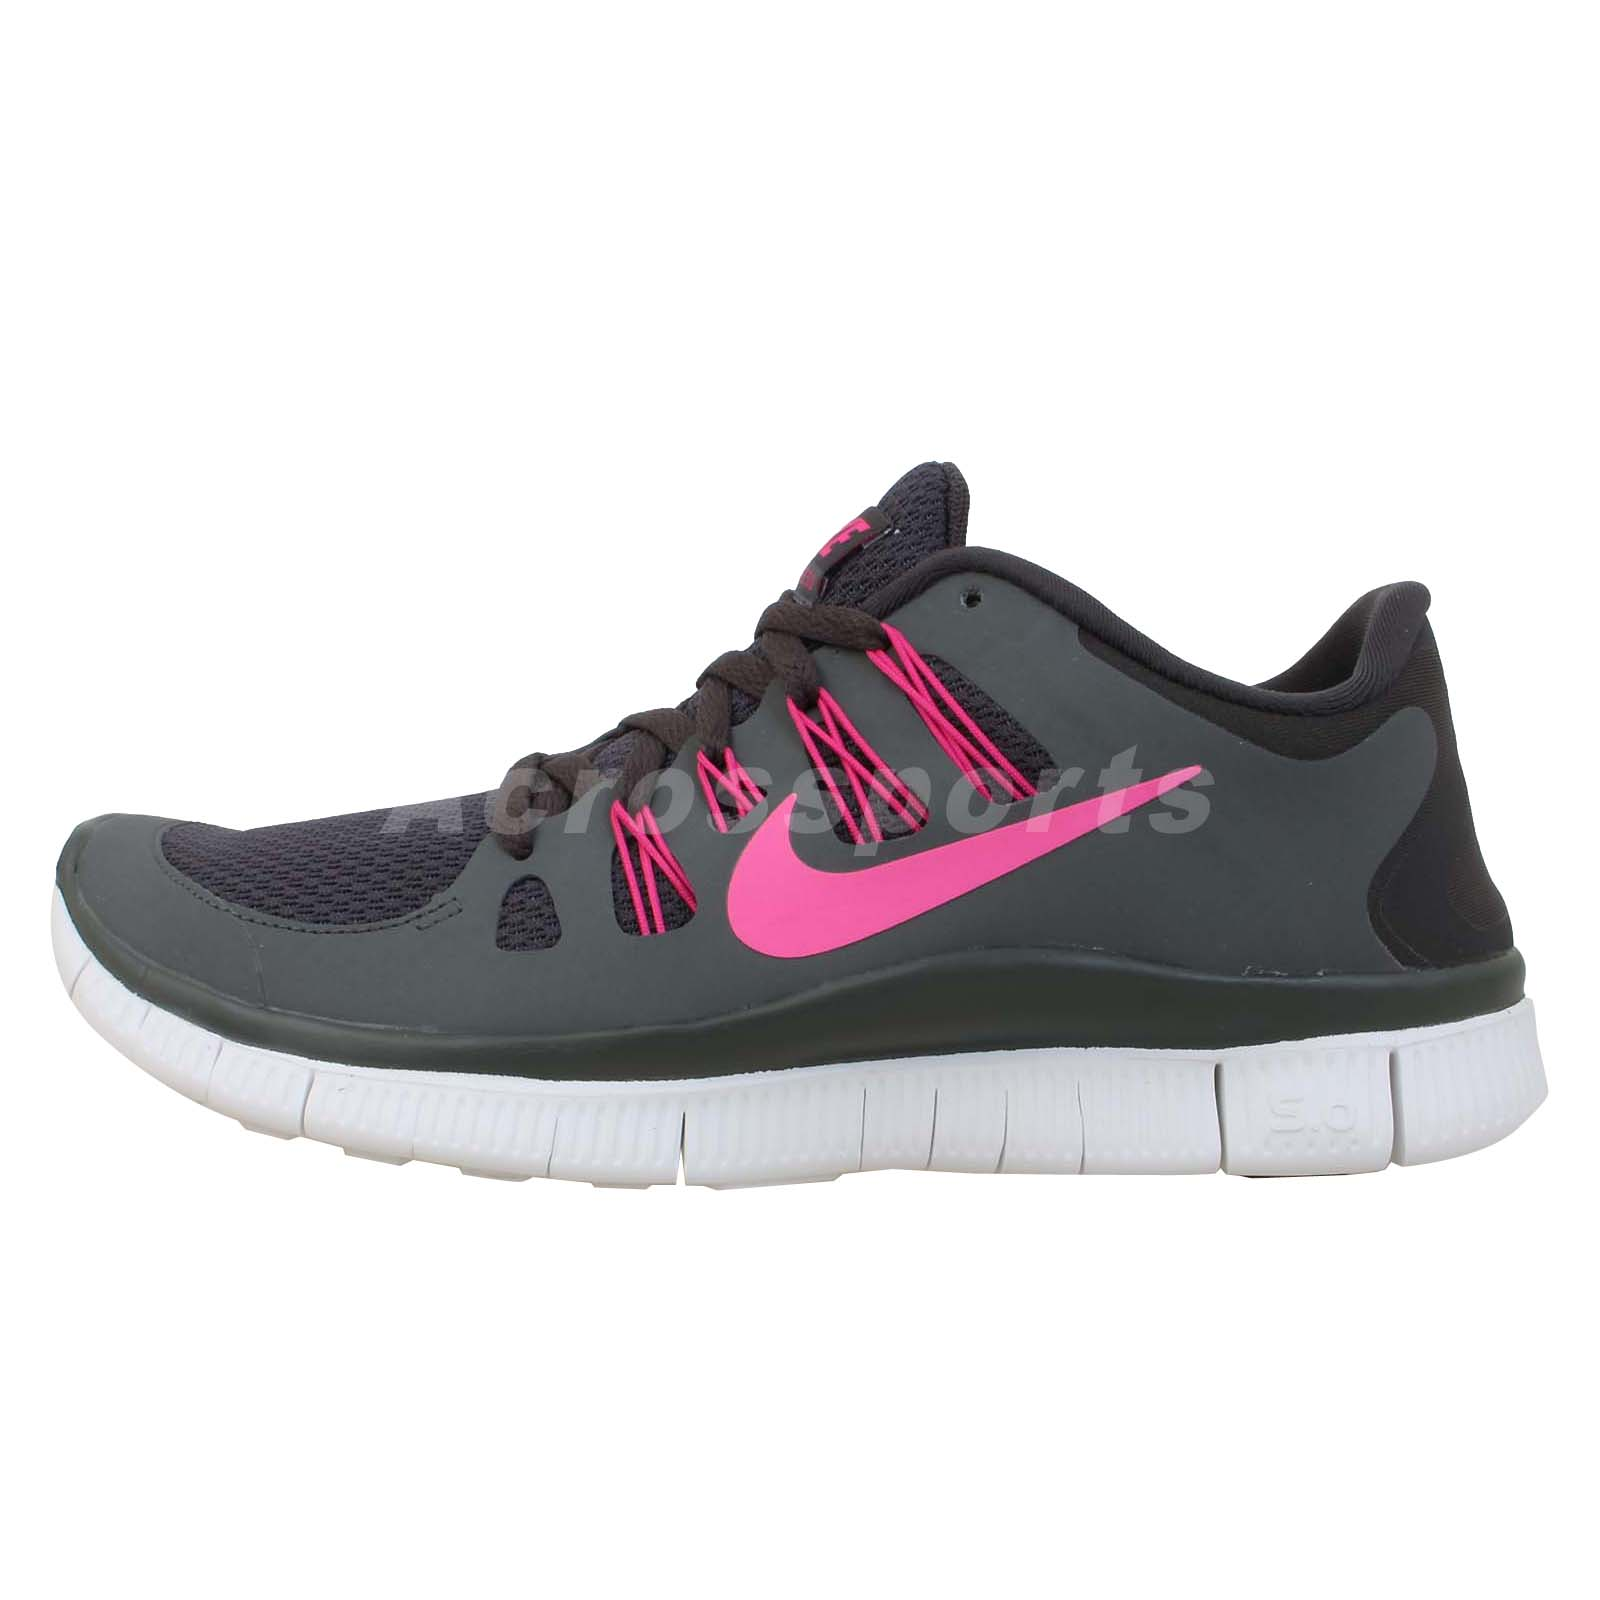 Nike Wmns Free 5.0 Run 3 2 2013 New Womens Lightweight ...